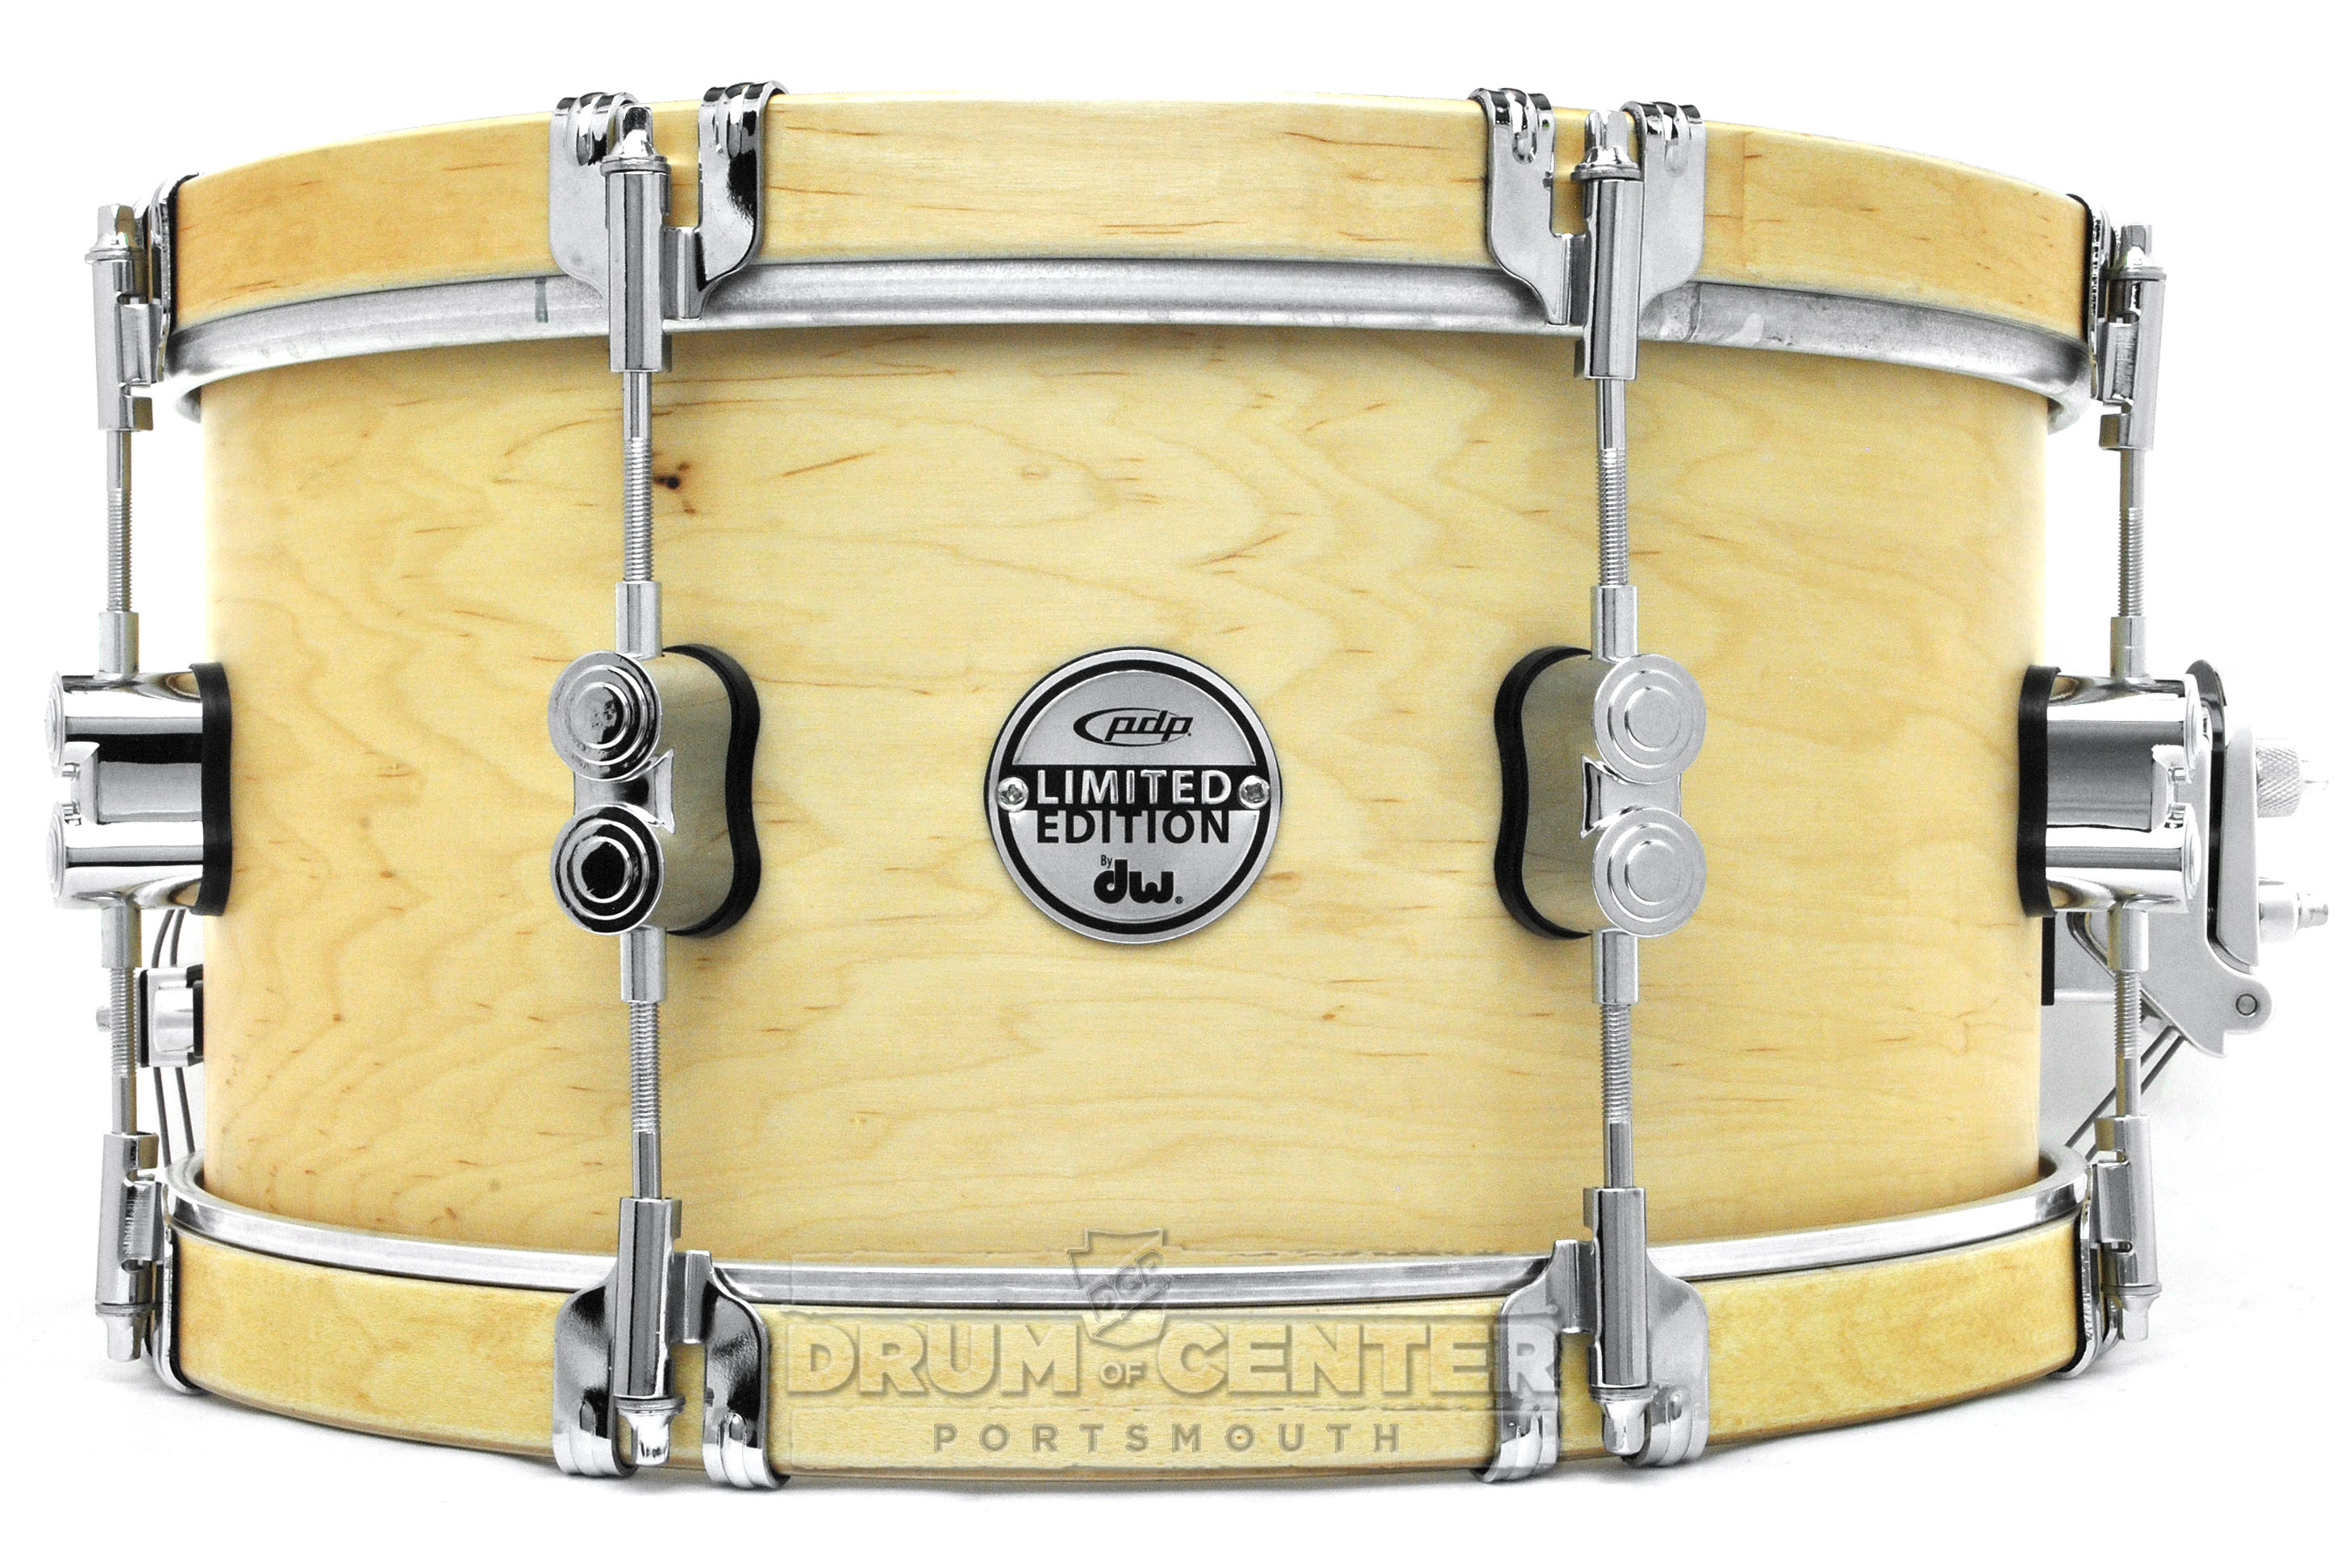 pdp limited maple classic wood hoop snare drum 14x7 pdsx0714clwh ebay. Black Bedroom Furniture Sets. Home Design Ideas